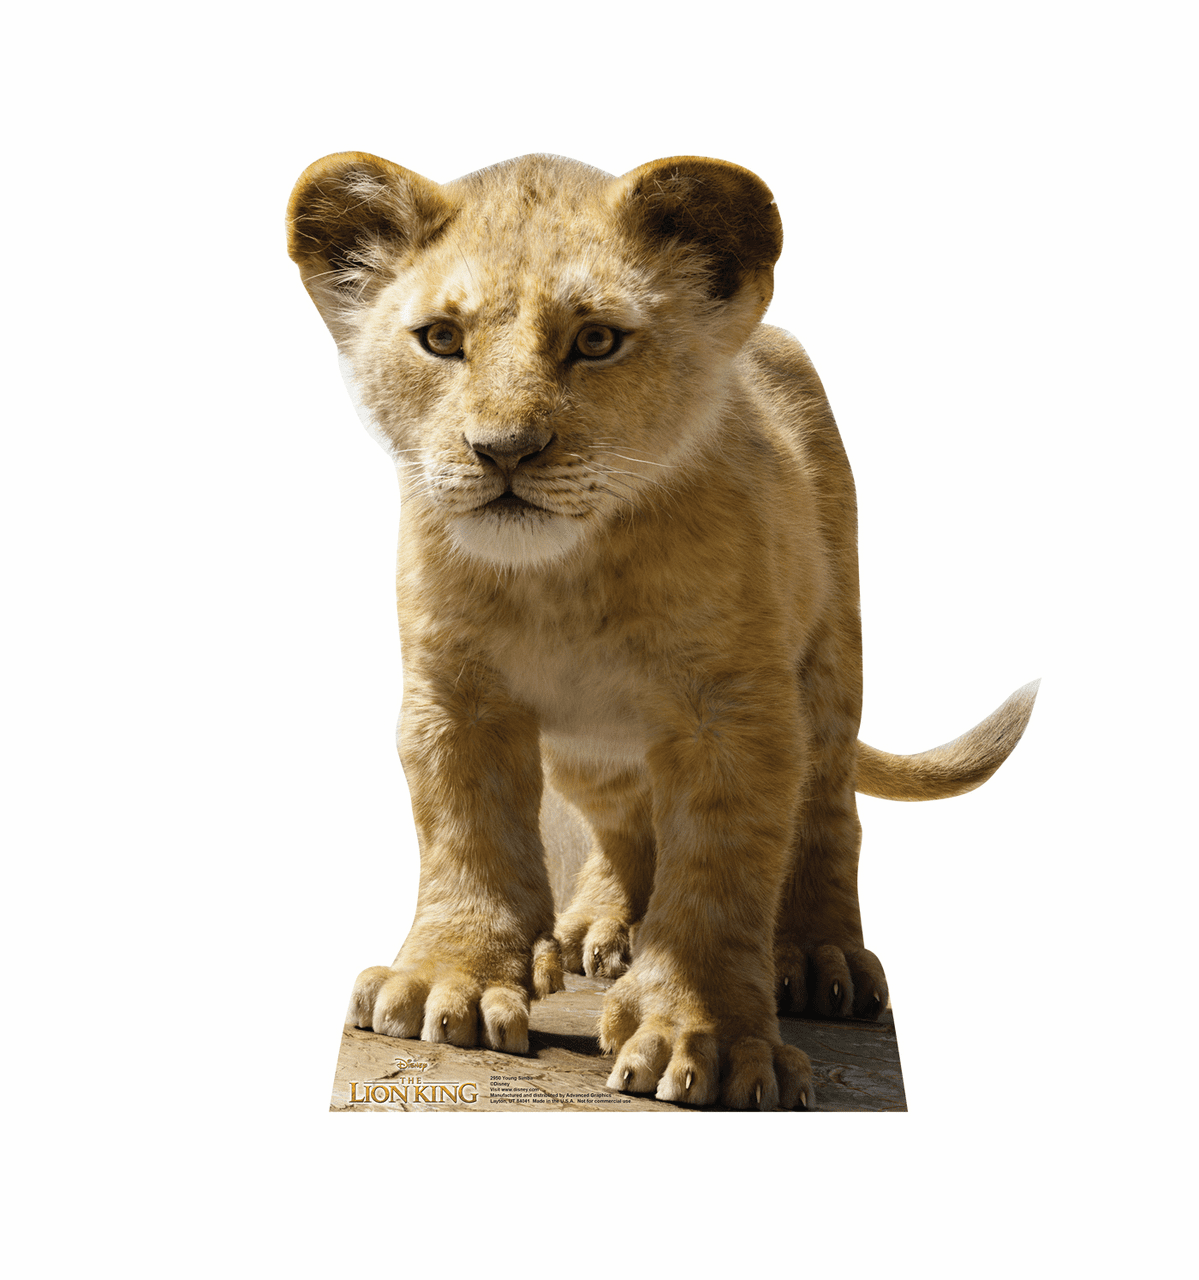 Life Size Lion King Standees